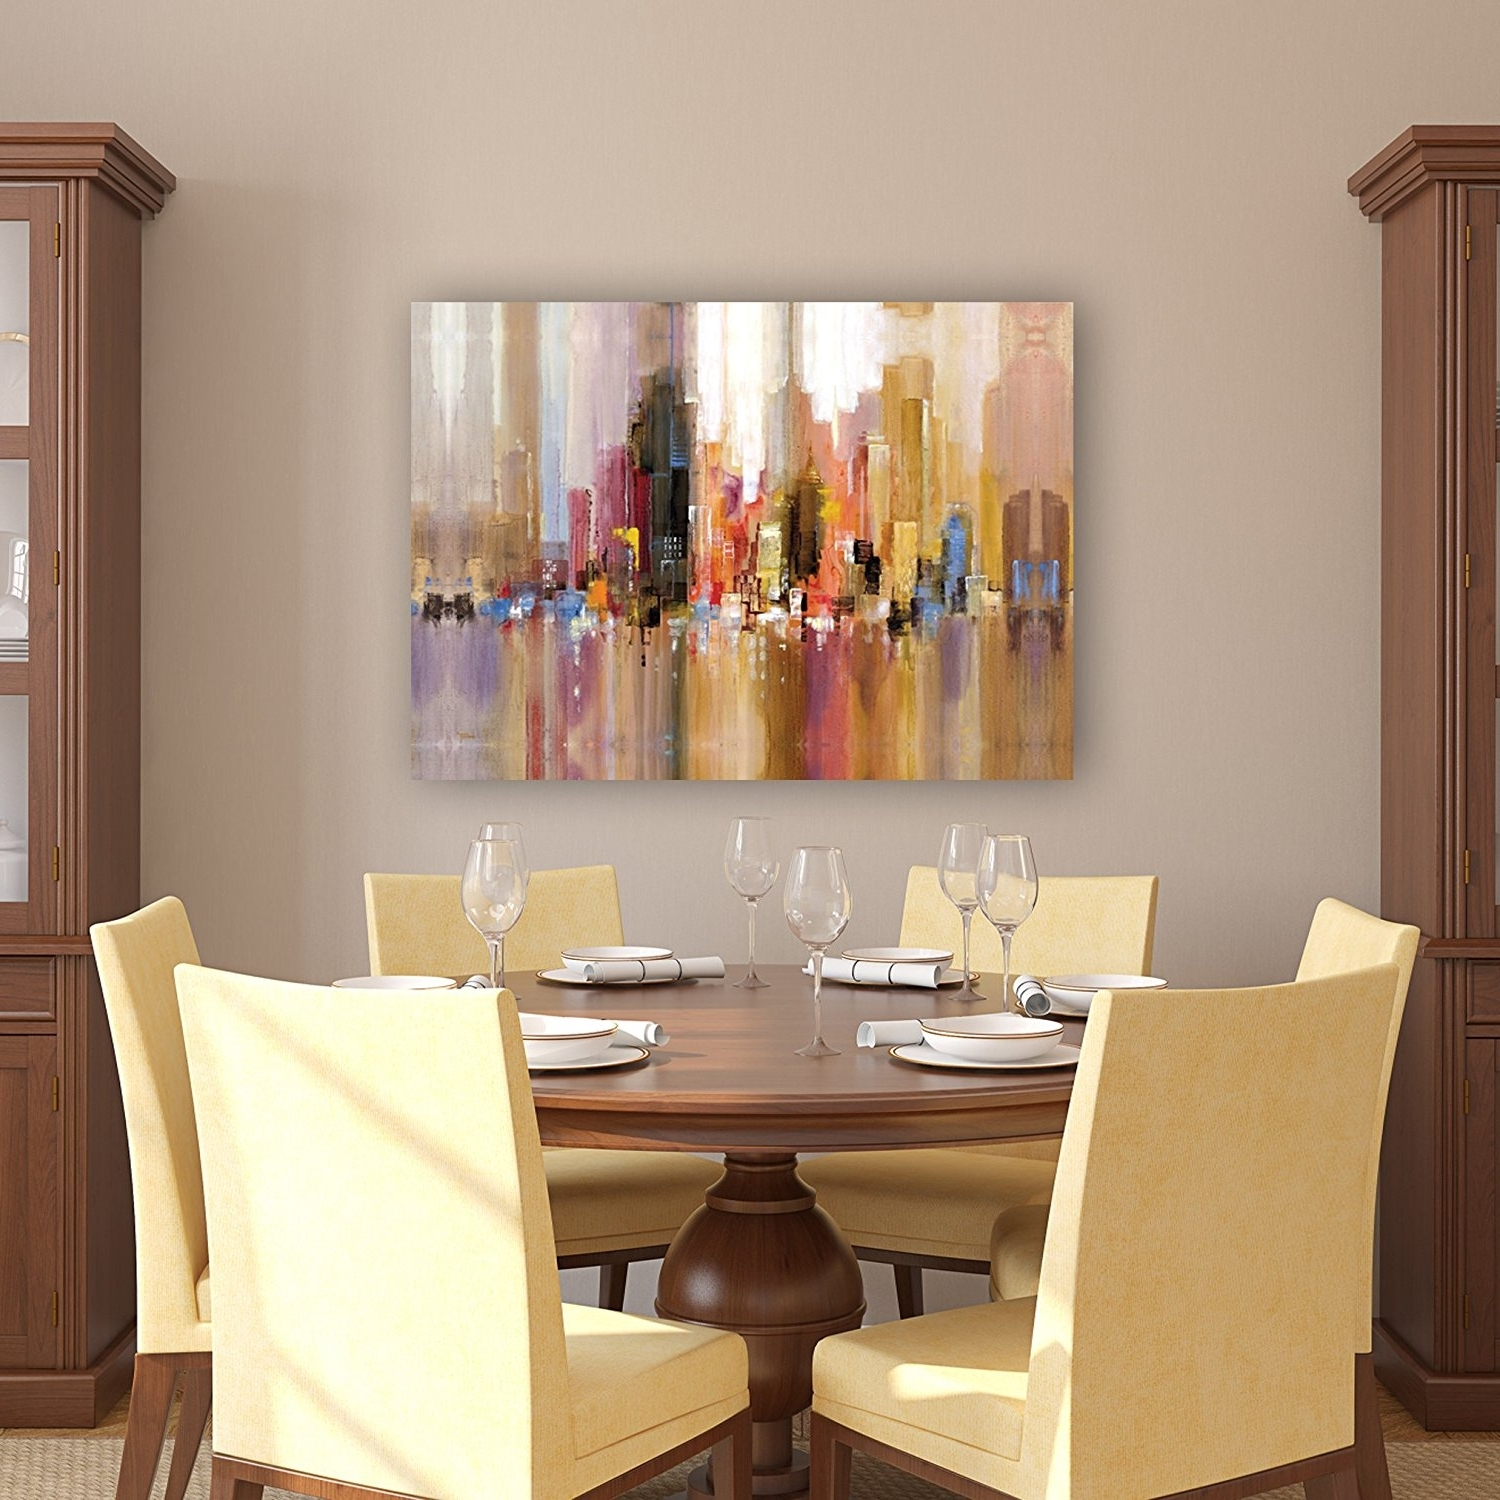 Wall Art For Dining Room: Top 15 Of Canvas Wall Art For Dining Room